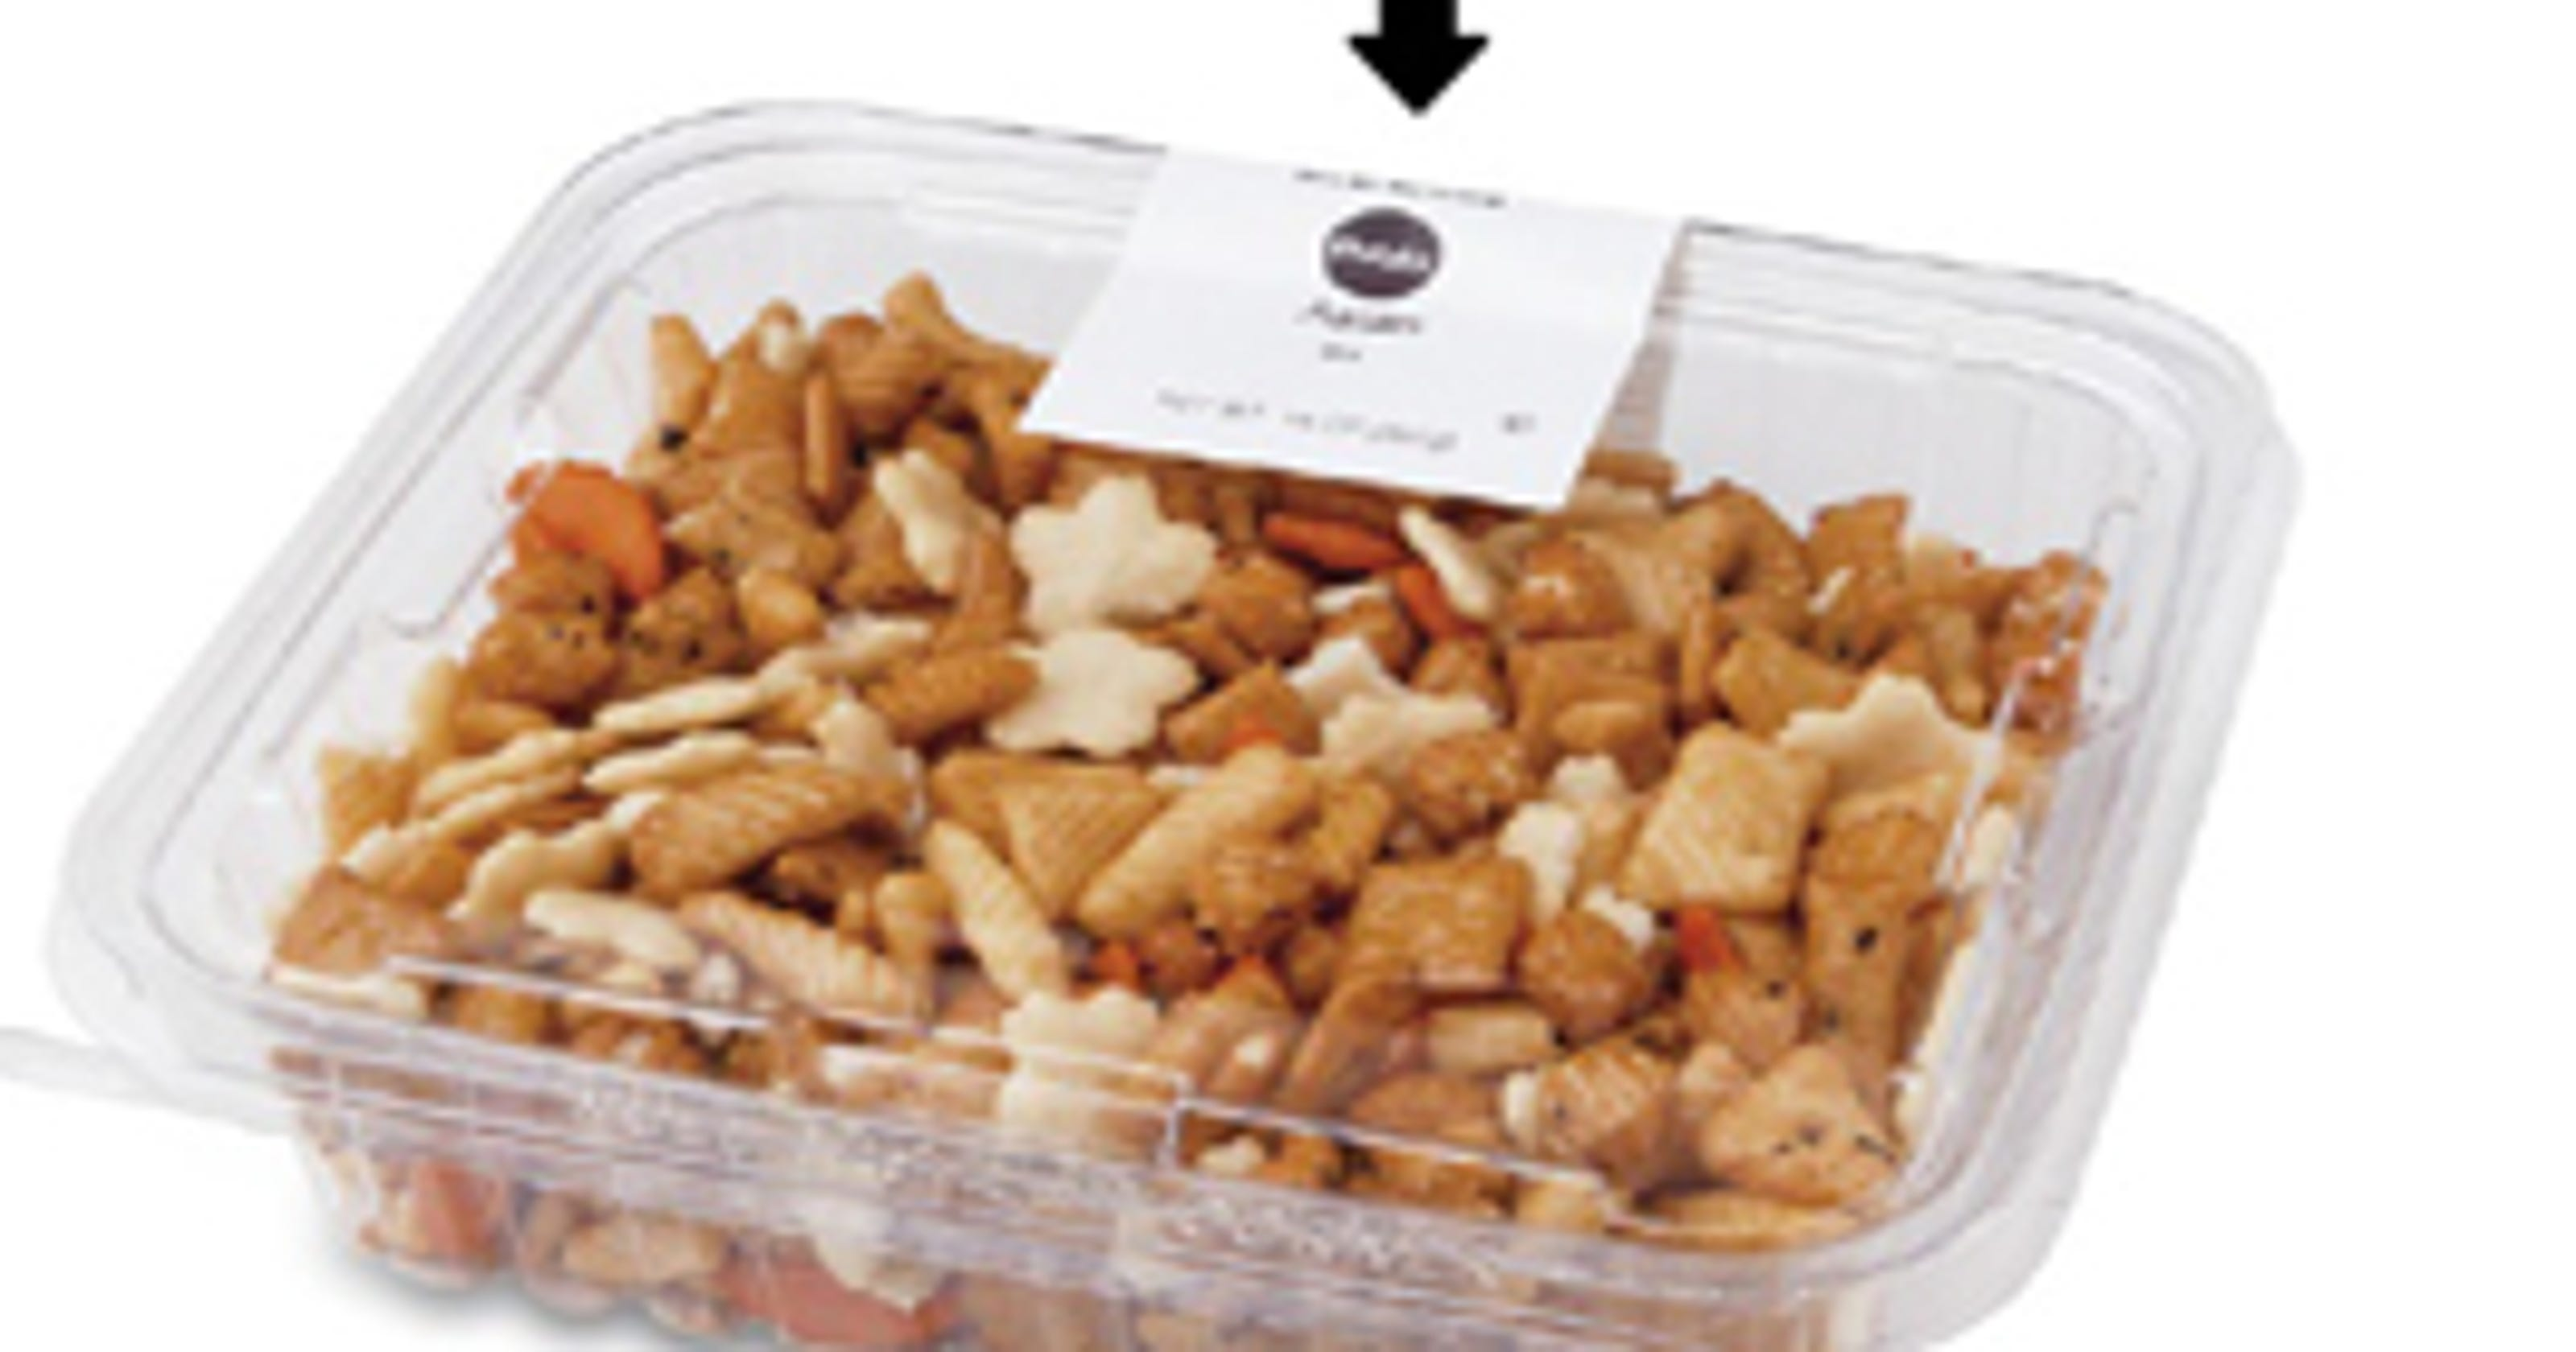 Publix recalls mislabeled Asian snack mix